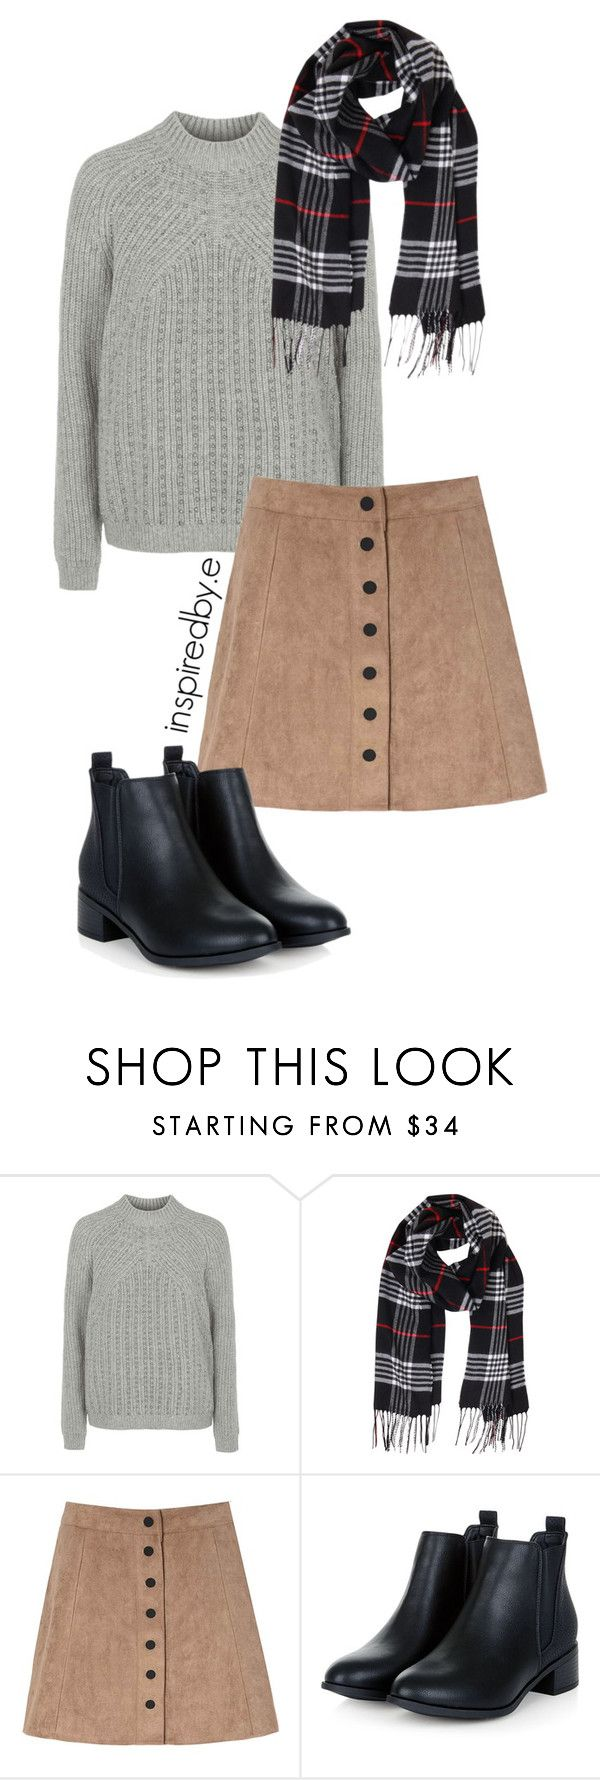 """Schoolgal"" by emmakiis on Polyvore featuring Topshop, Humble Chic and Glamorous"